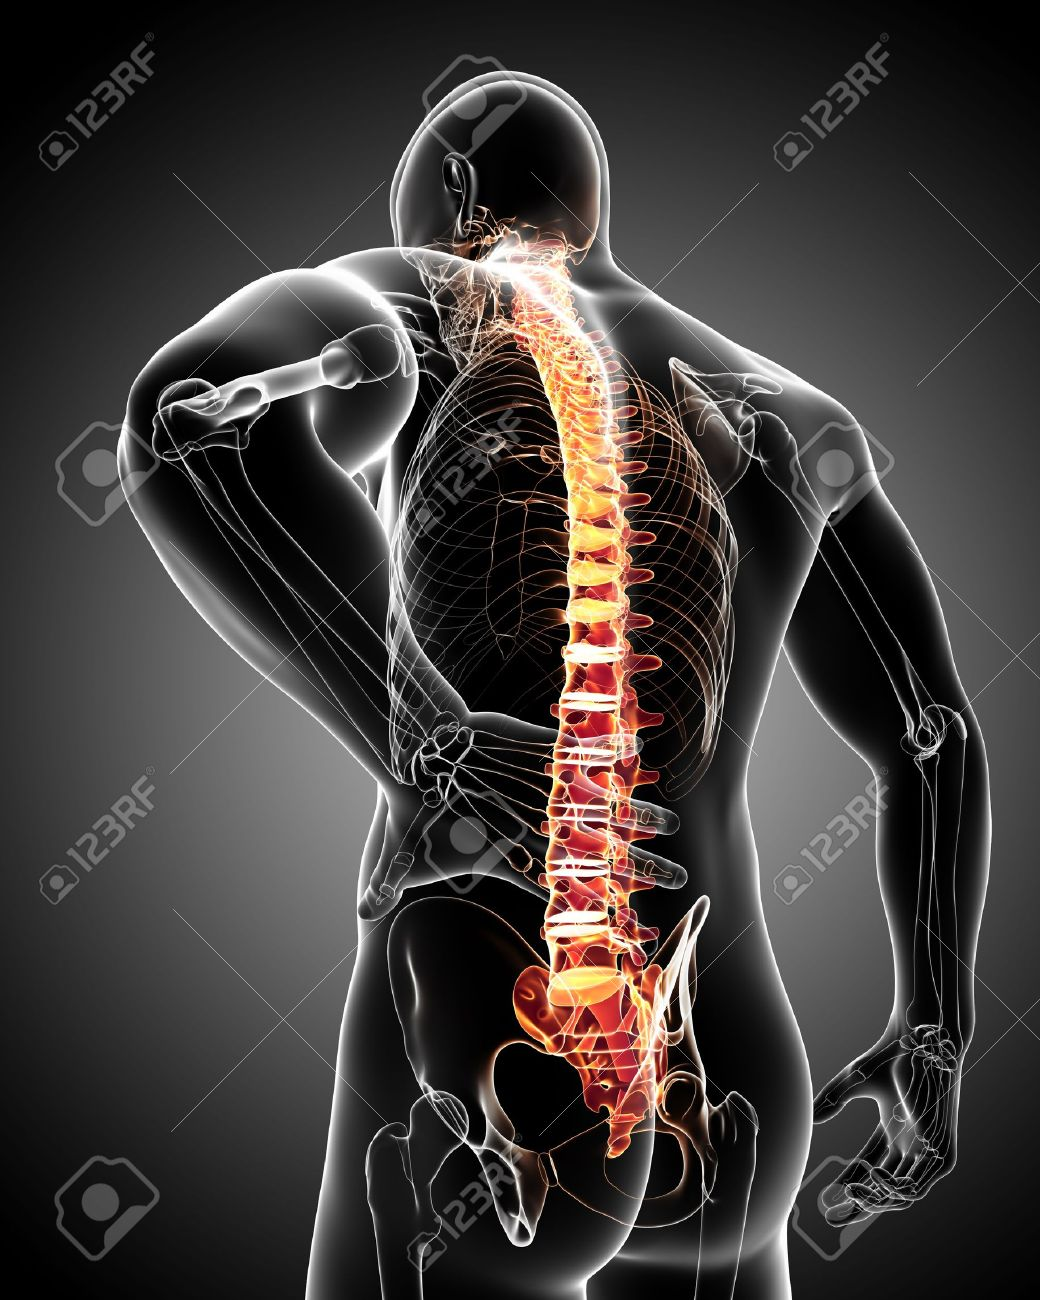 Back Pain Anatomy Stock Photo, Picture And Royalty Free Image. Image ...